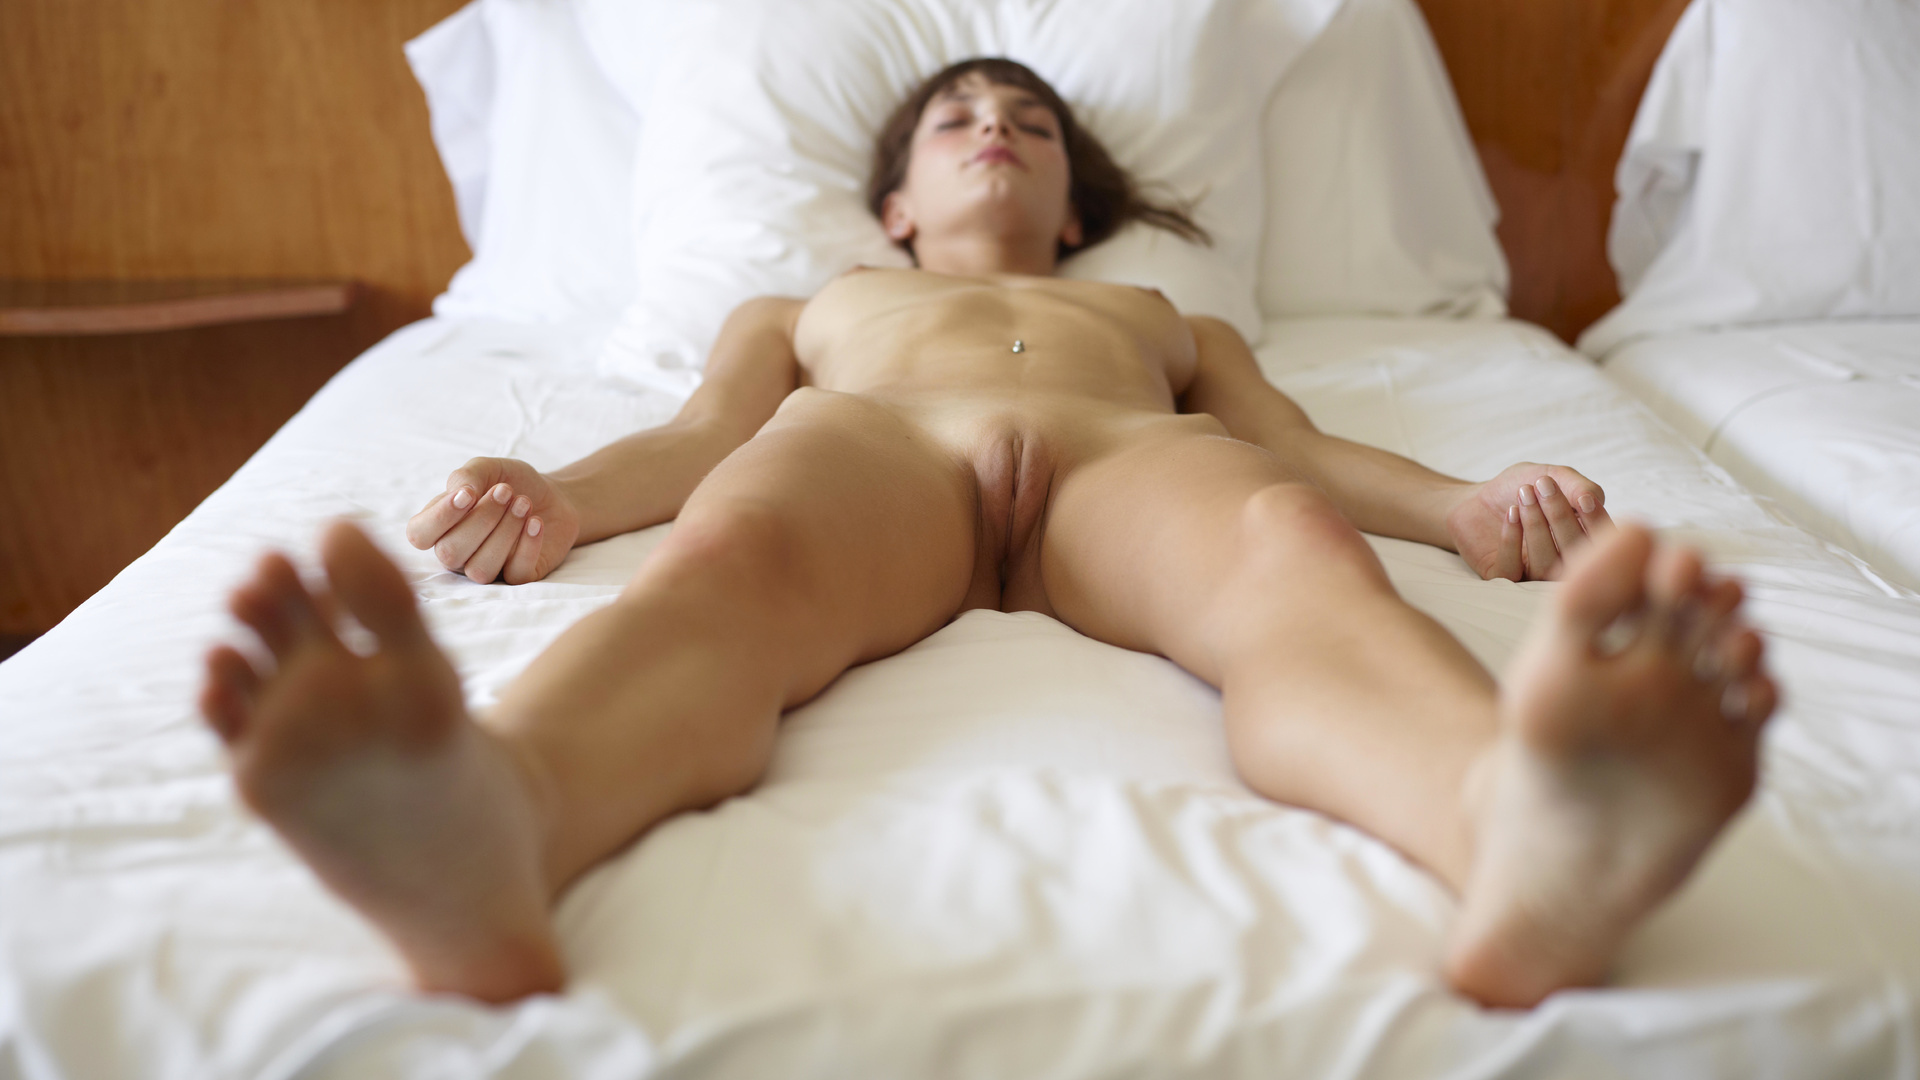 Girls having sex naked in the bed